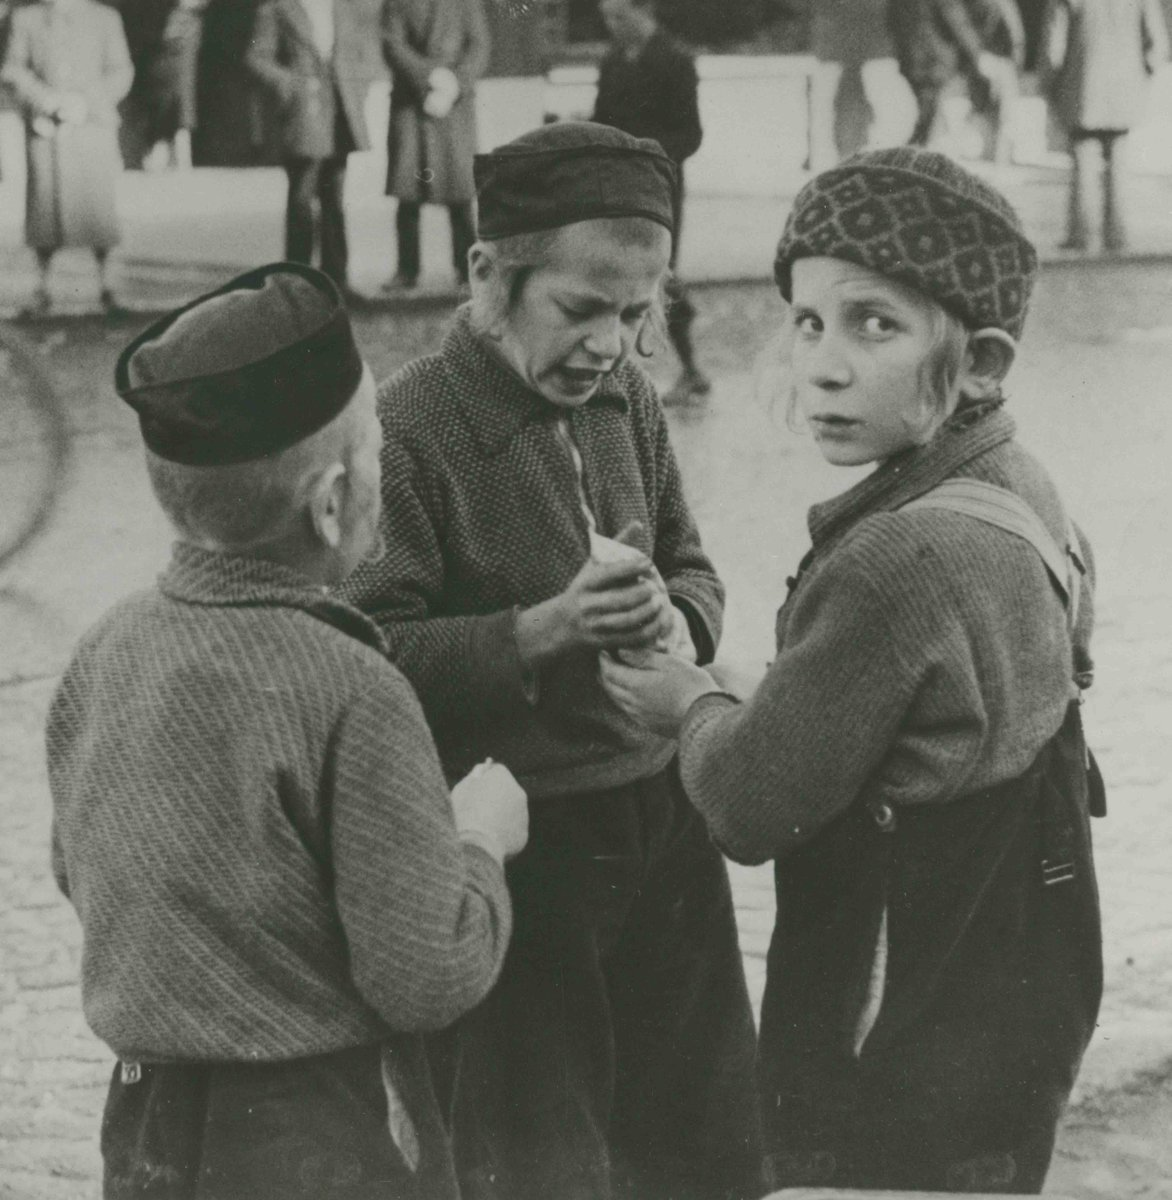 Three boys in one of the Jewish Ghettos of Poland, early 1940s. Image from Collection I-433.